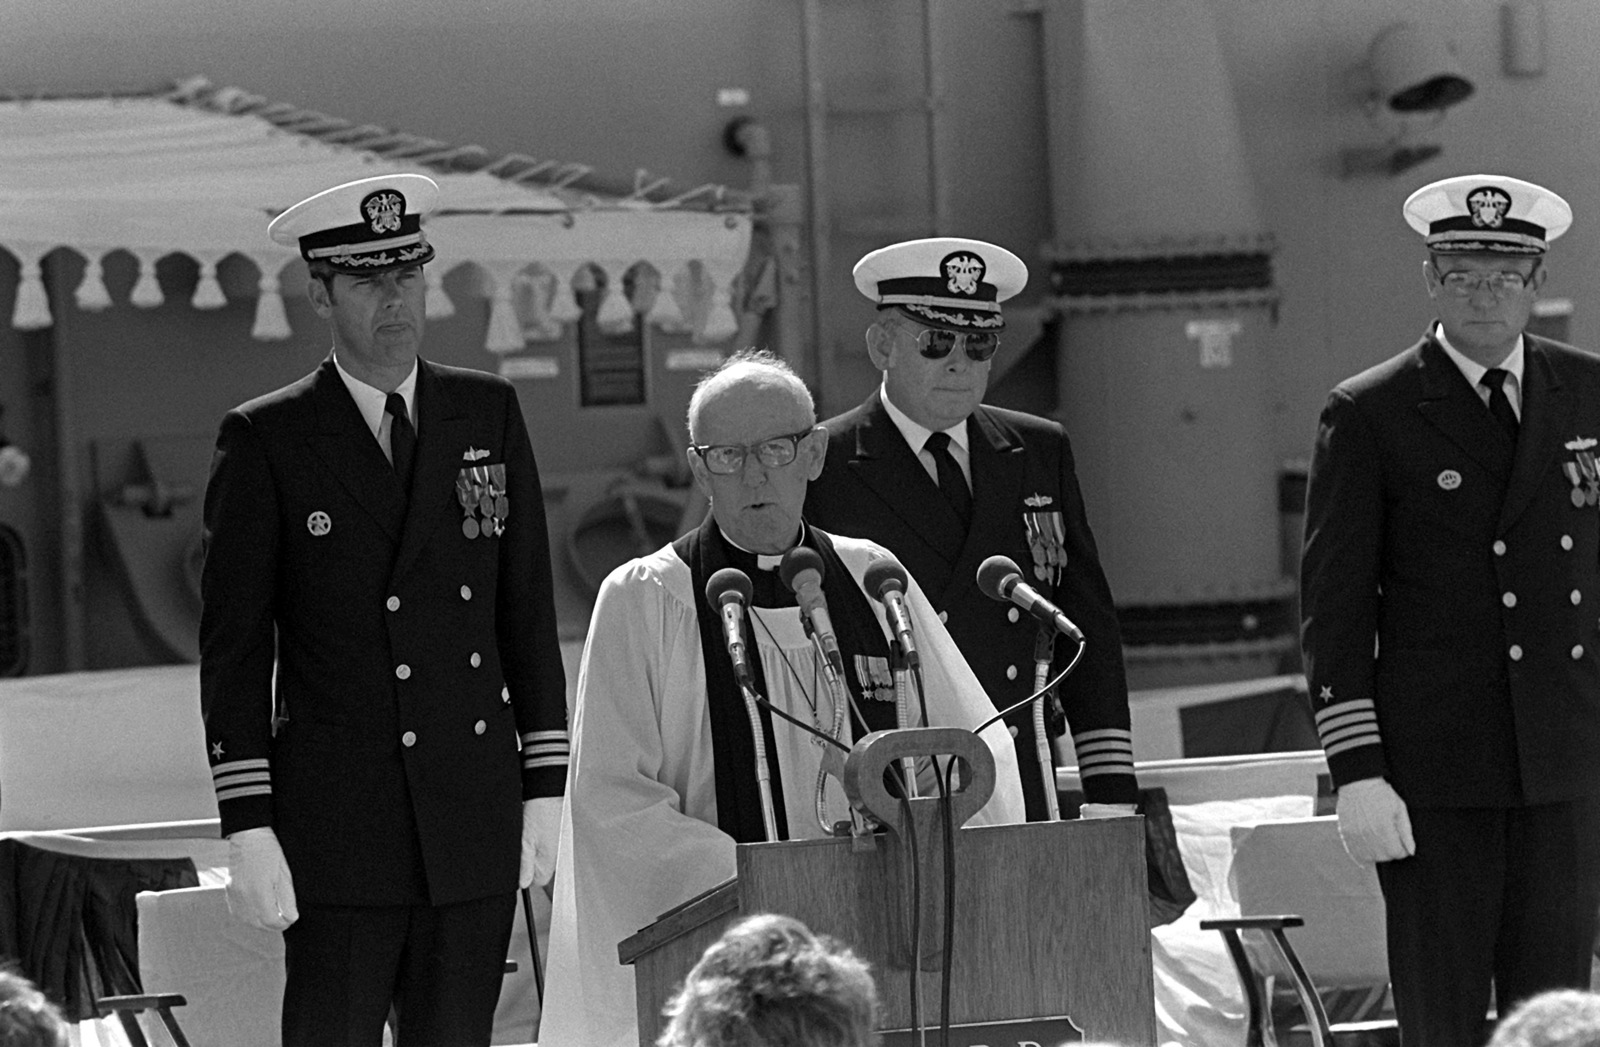 The Rev. John S. Horner leads the guests in prayer during commissioning ceremonies for the guided missile frigate USS REID (FFG-30)